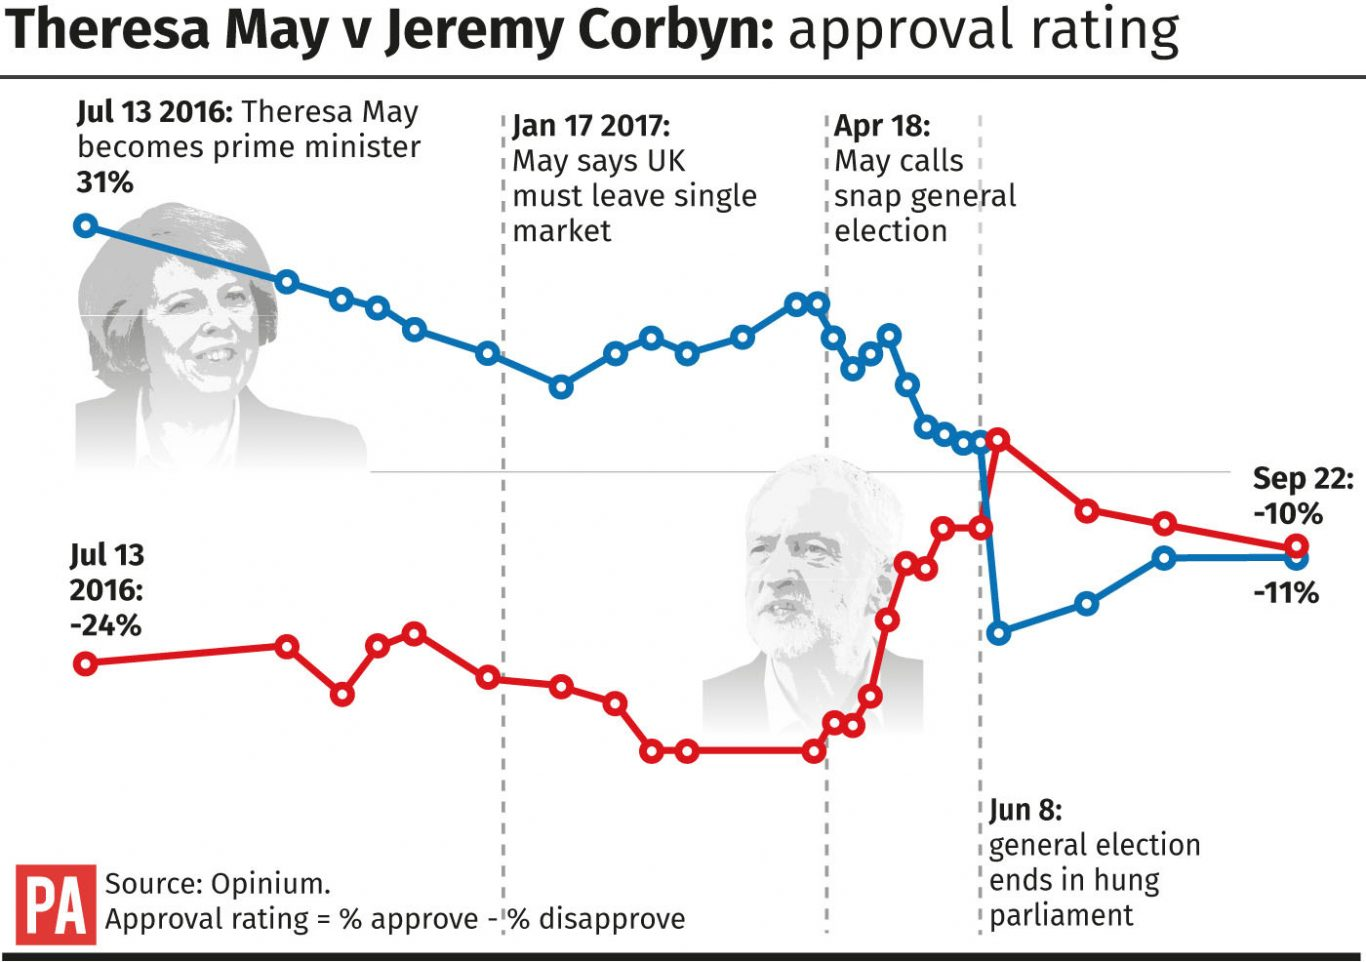 Theresa May v Jeremy Corbyn: approval rating